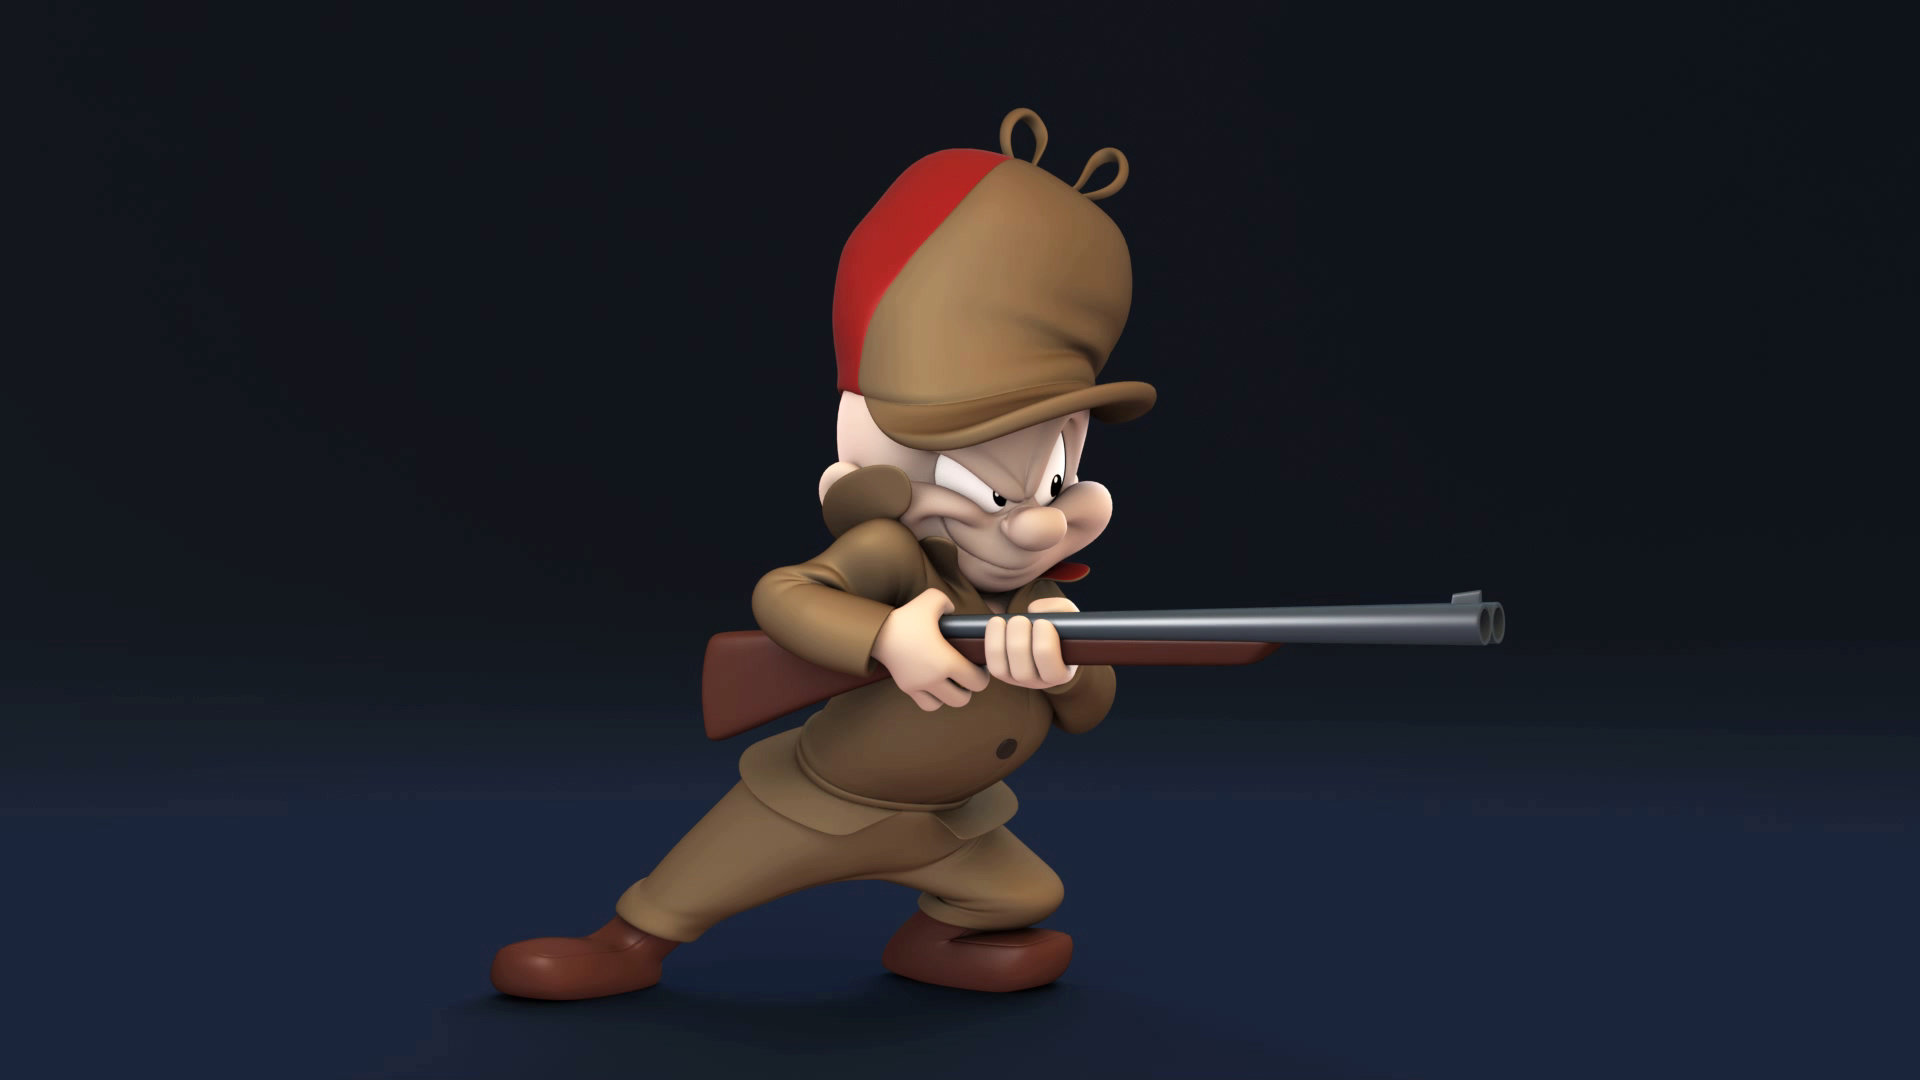 3d Animation Desktop Wallpapers Free Download Elmer Fudd Hd Wallpapers